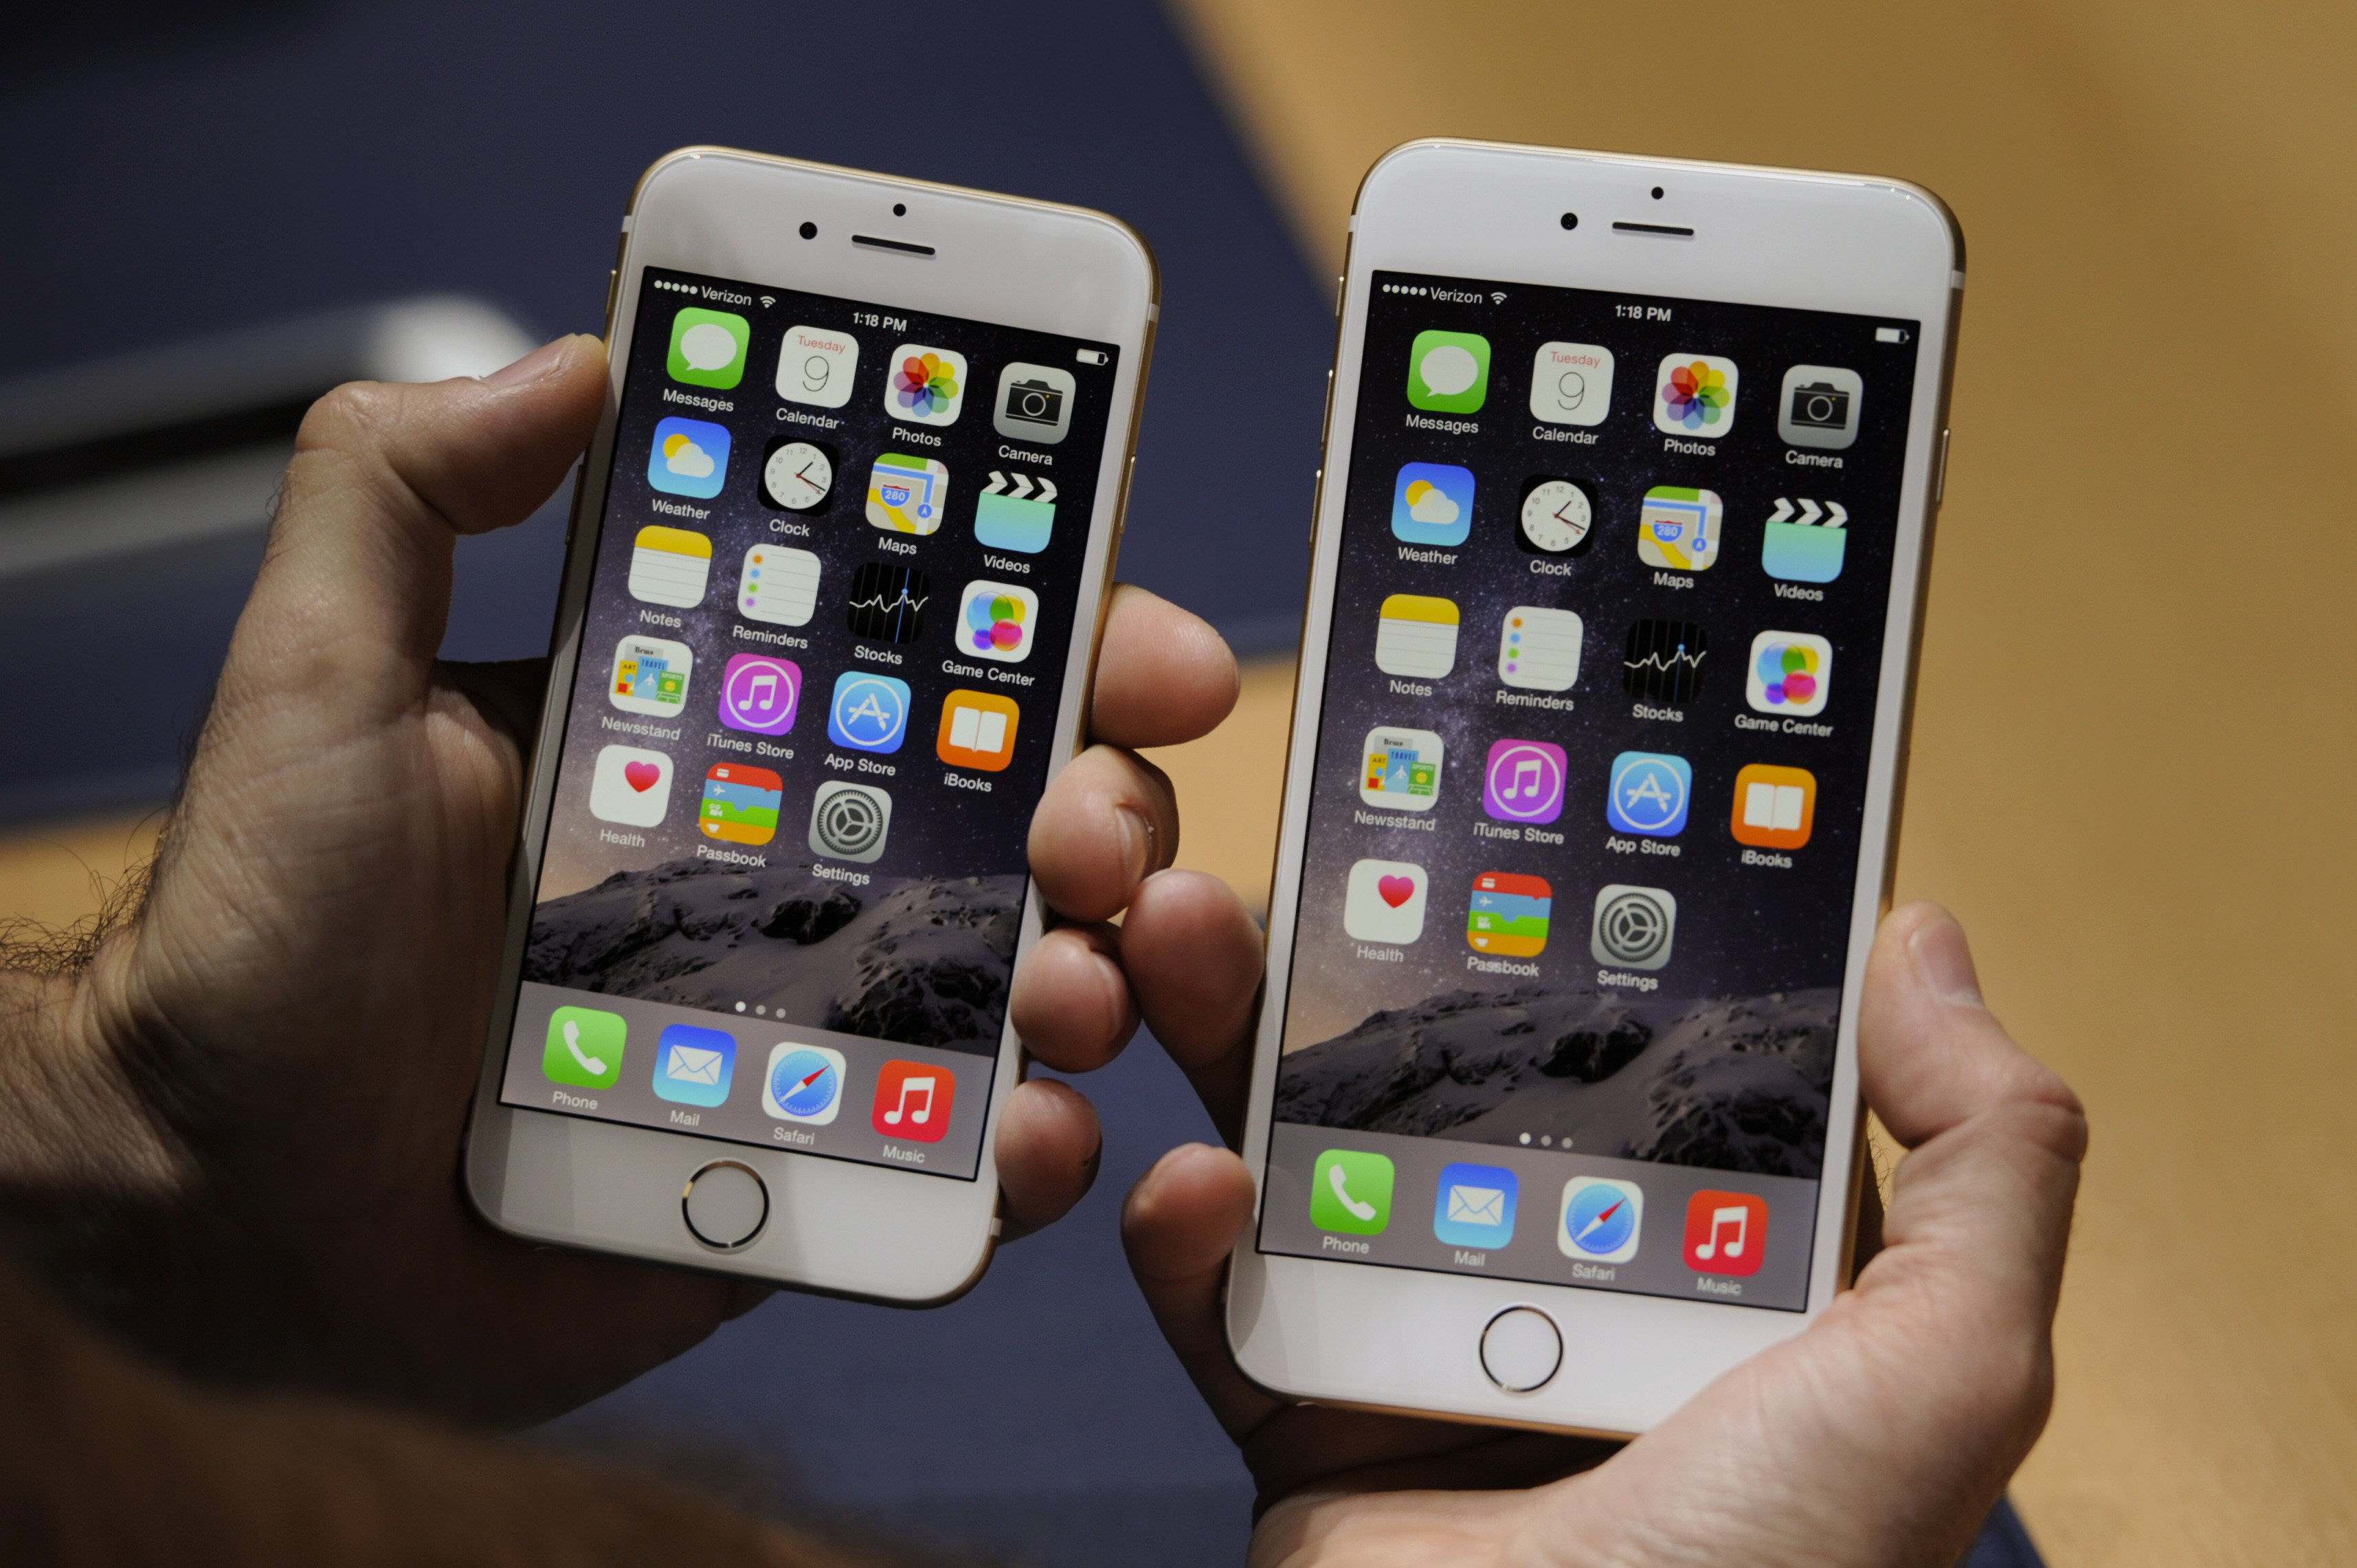 An attendee displays the new Apple Inc. iPhone 6, left, and iPhone 6 Plus for a photograph after a product announcement at Flint Center in Cupertino, Calif., on Sept. 9, 2014.